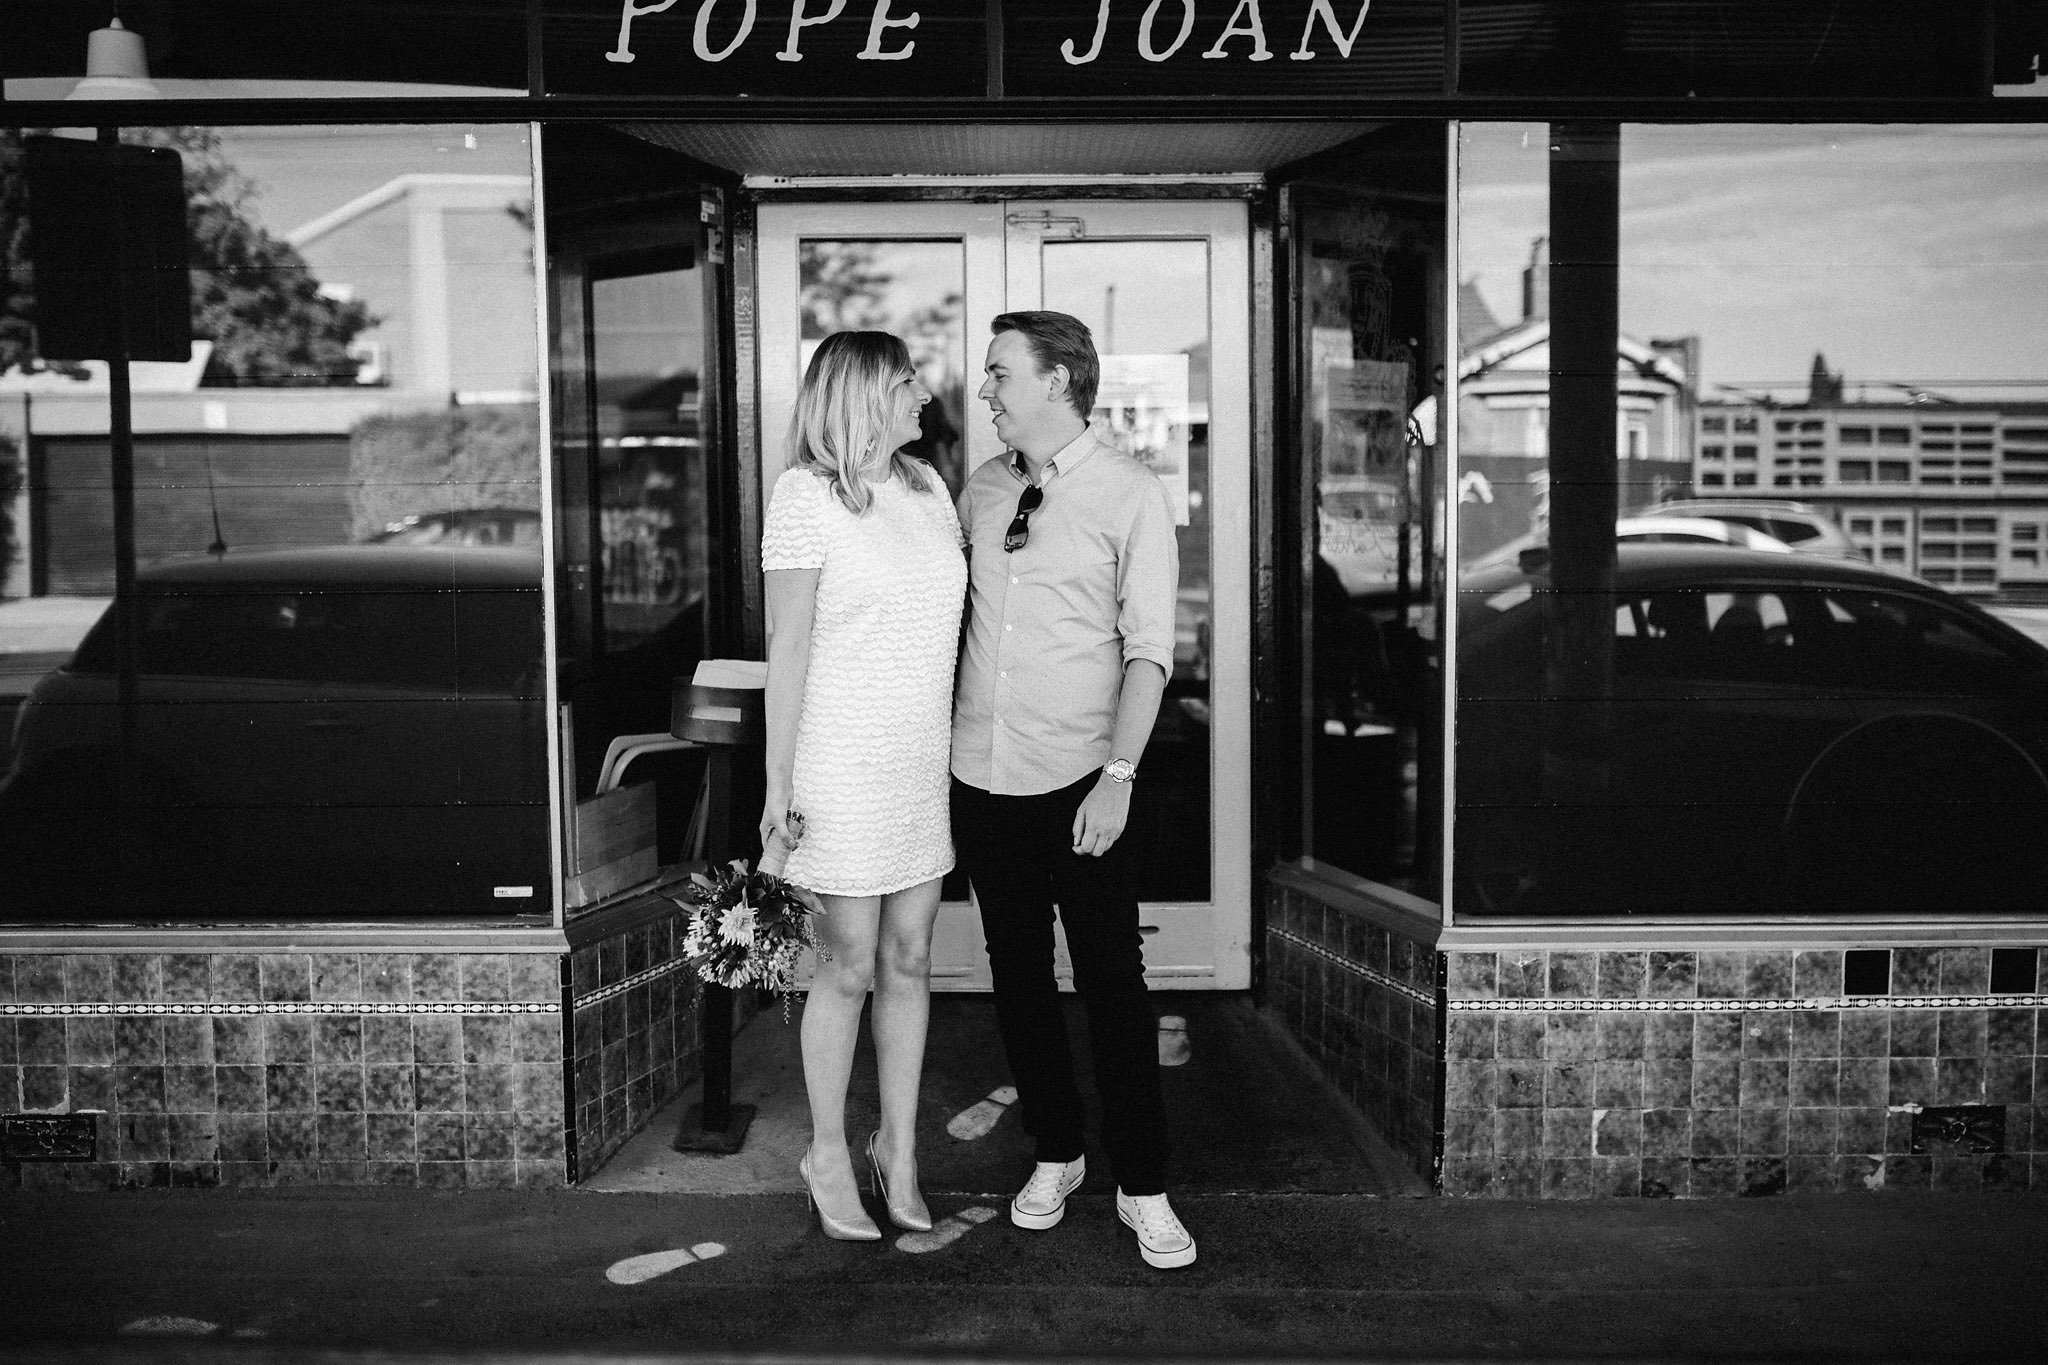 Pope Joan Wedding